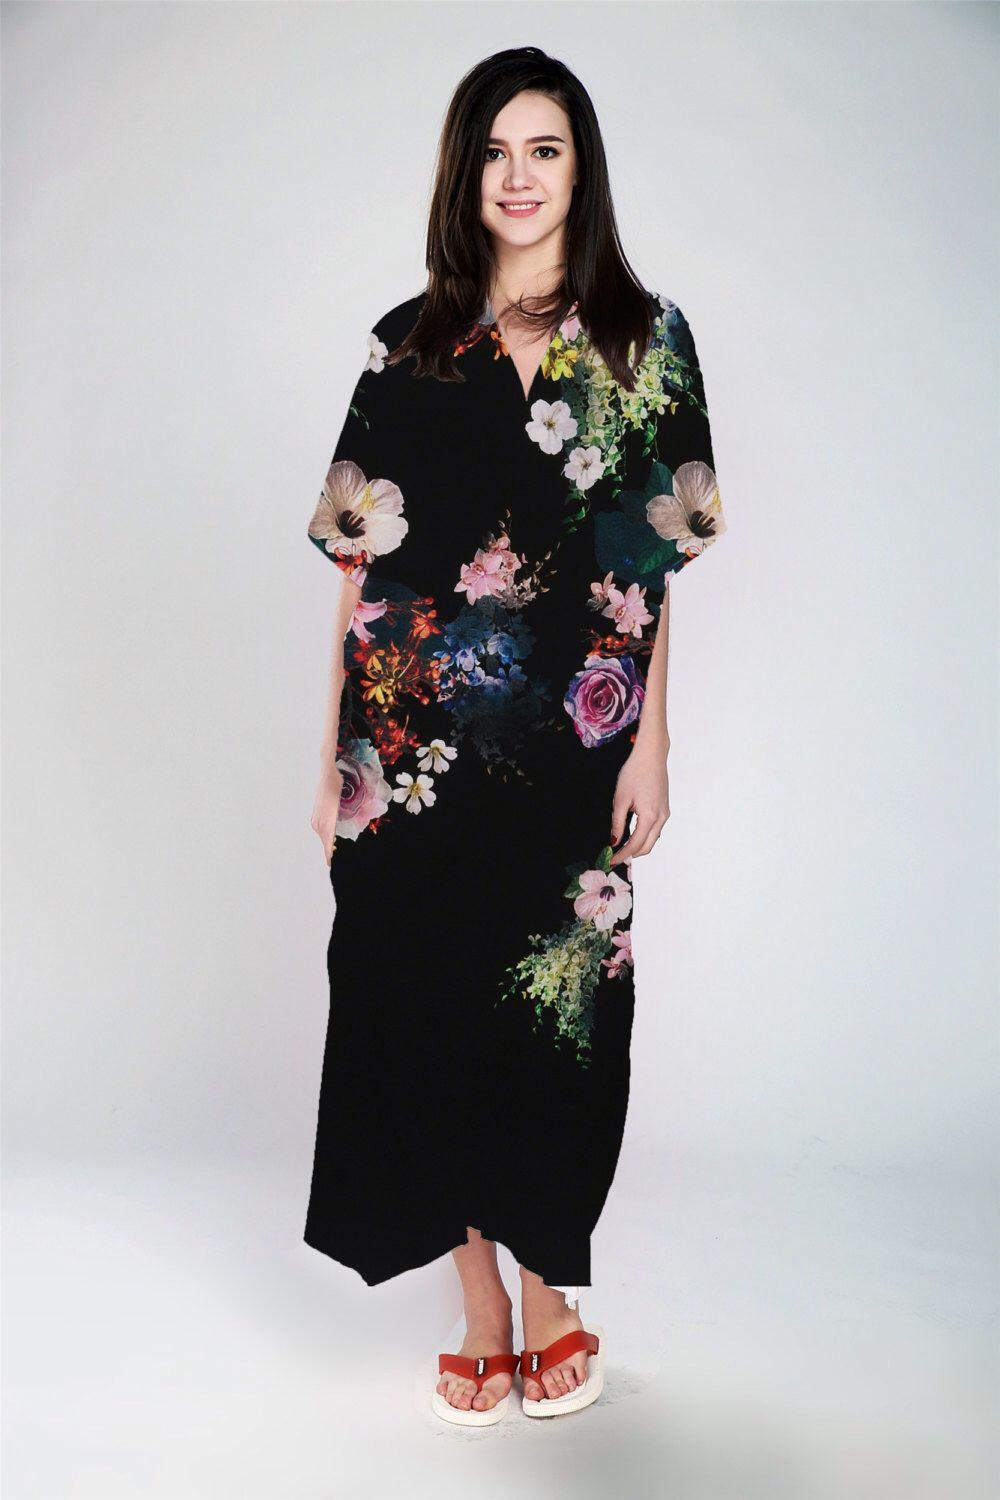 maternity hospital delivery dresses for weddings maternity birthing ...